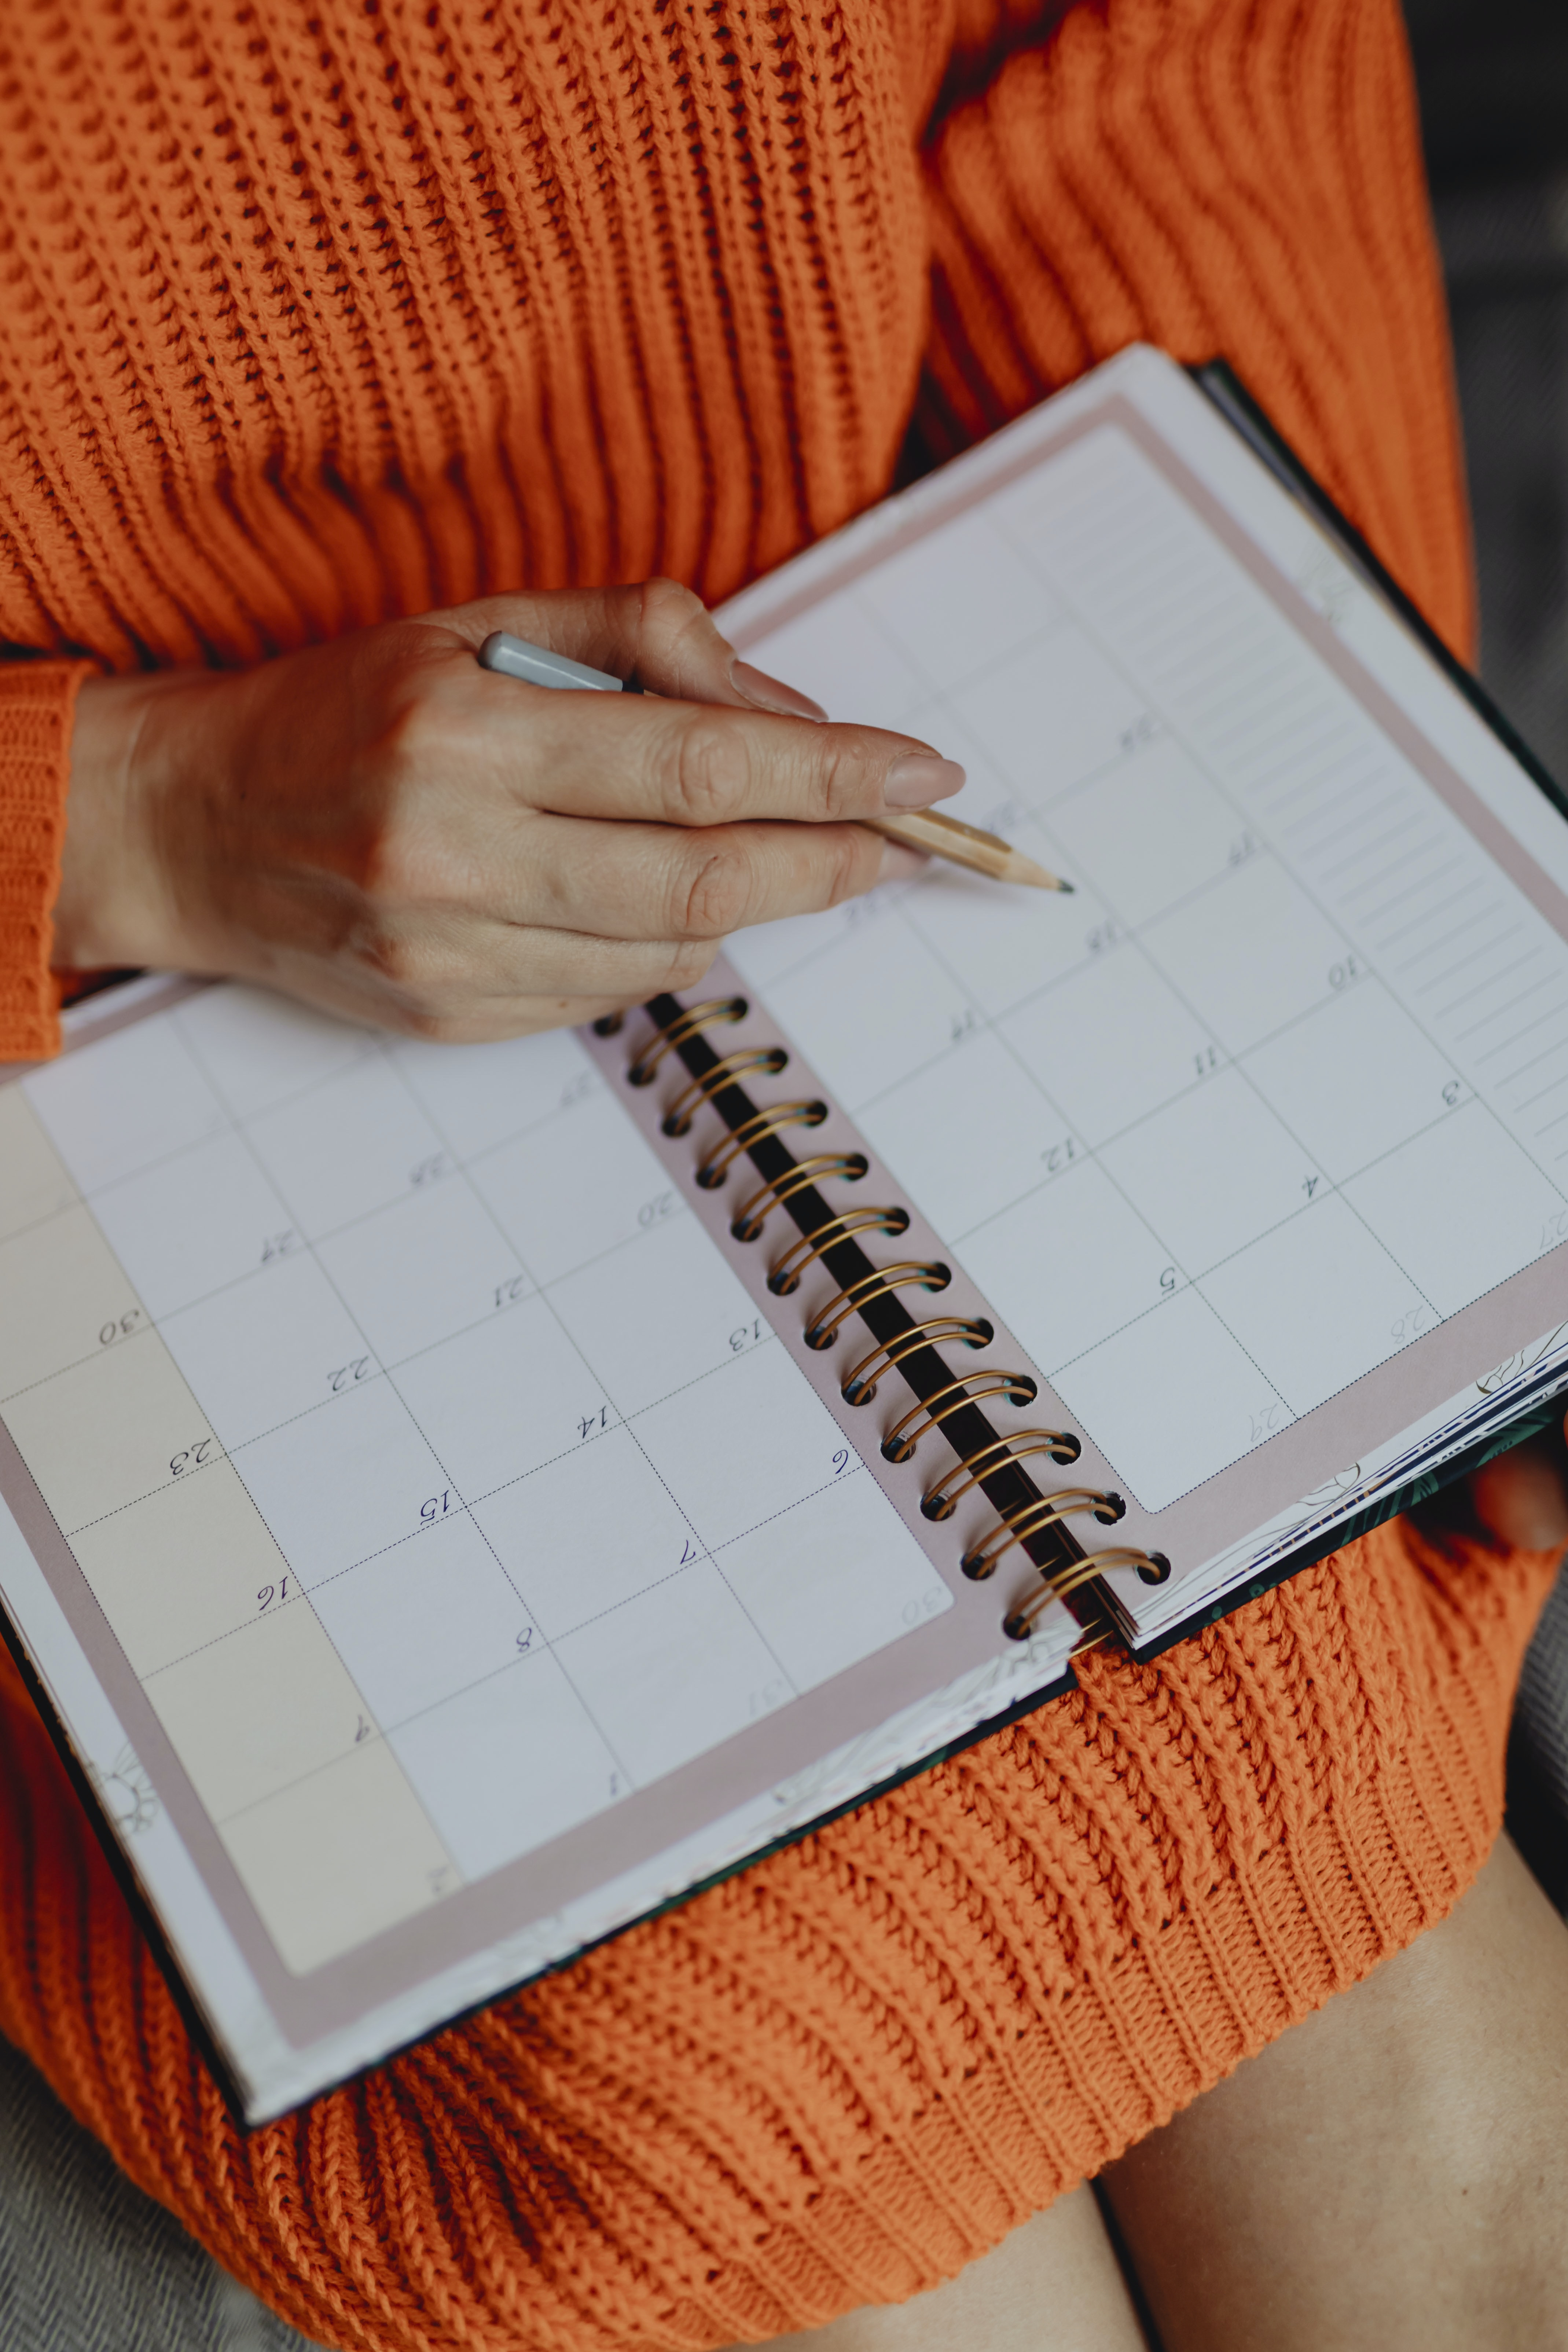 woman in orange knitted dress writing notes on book